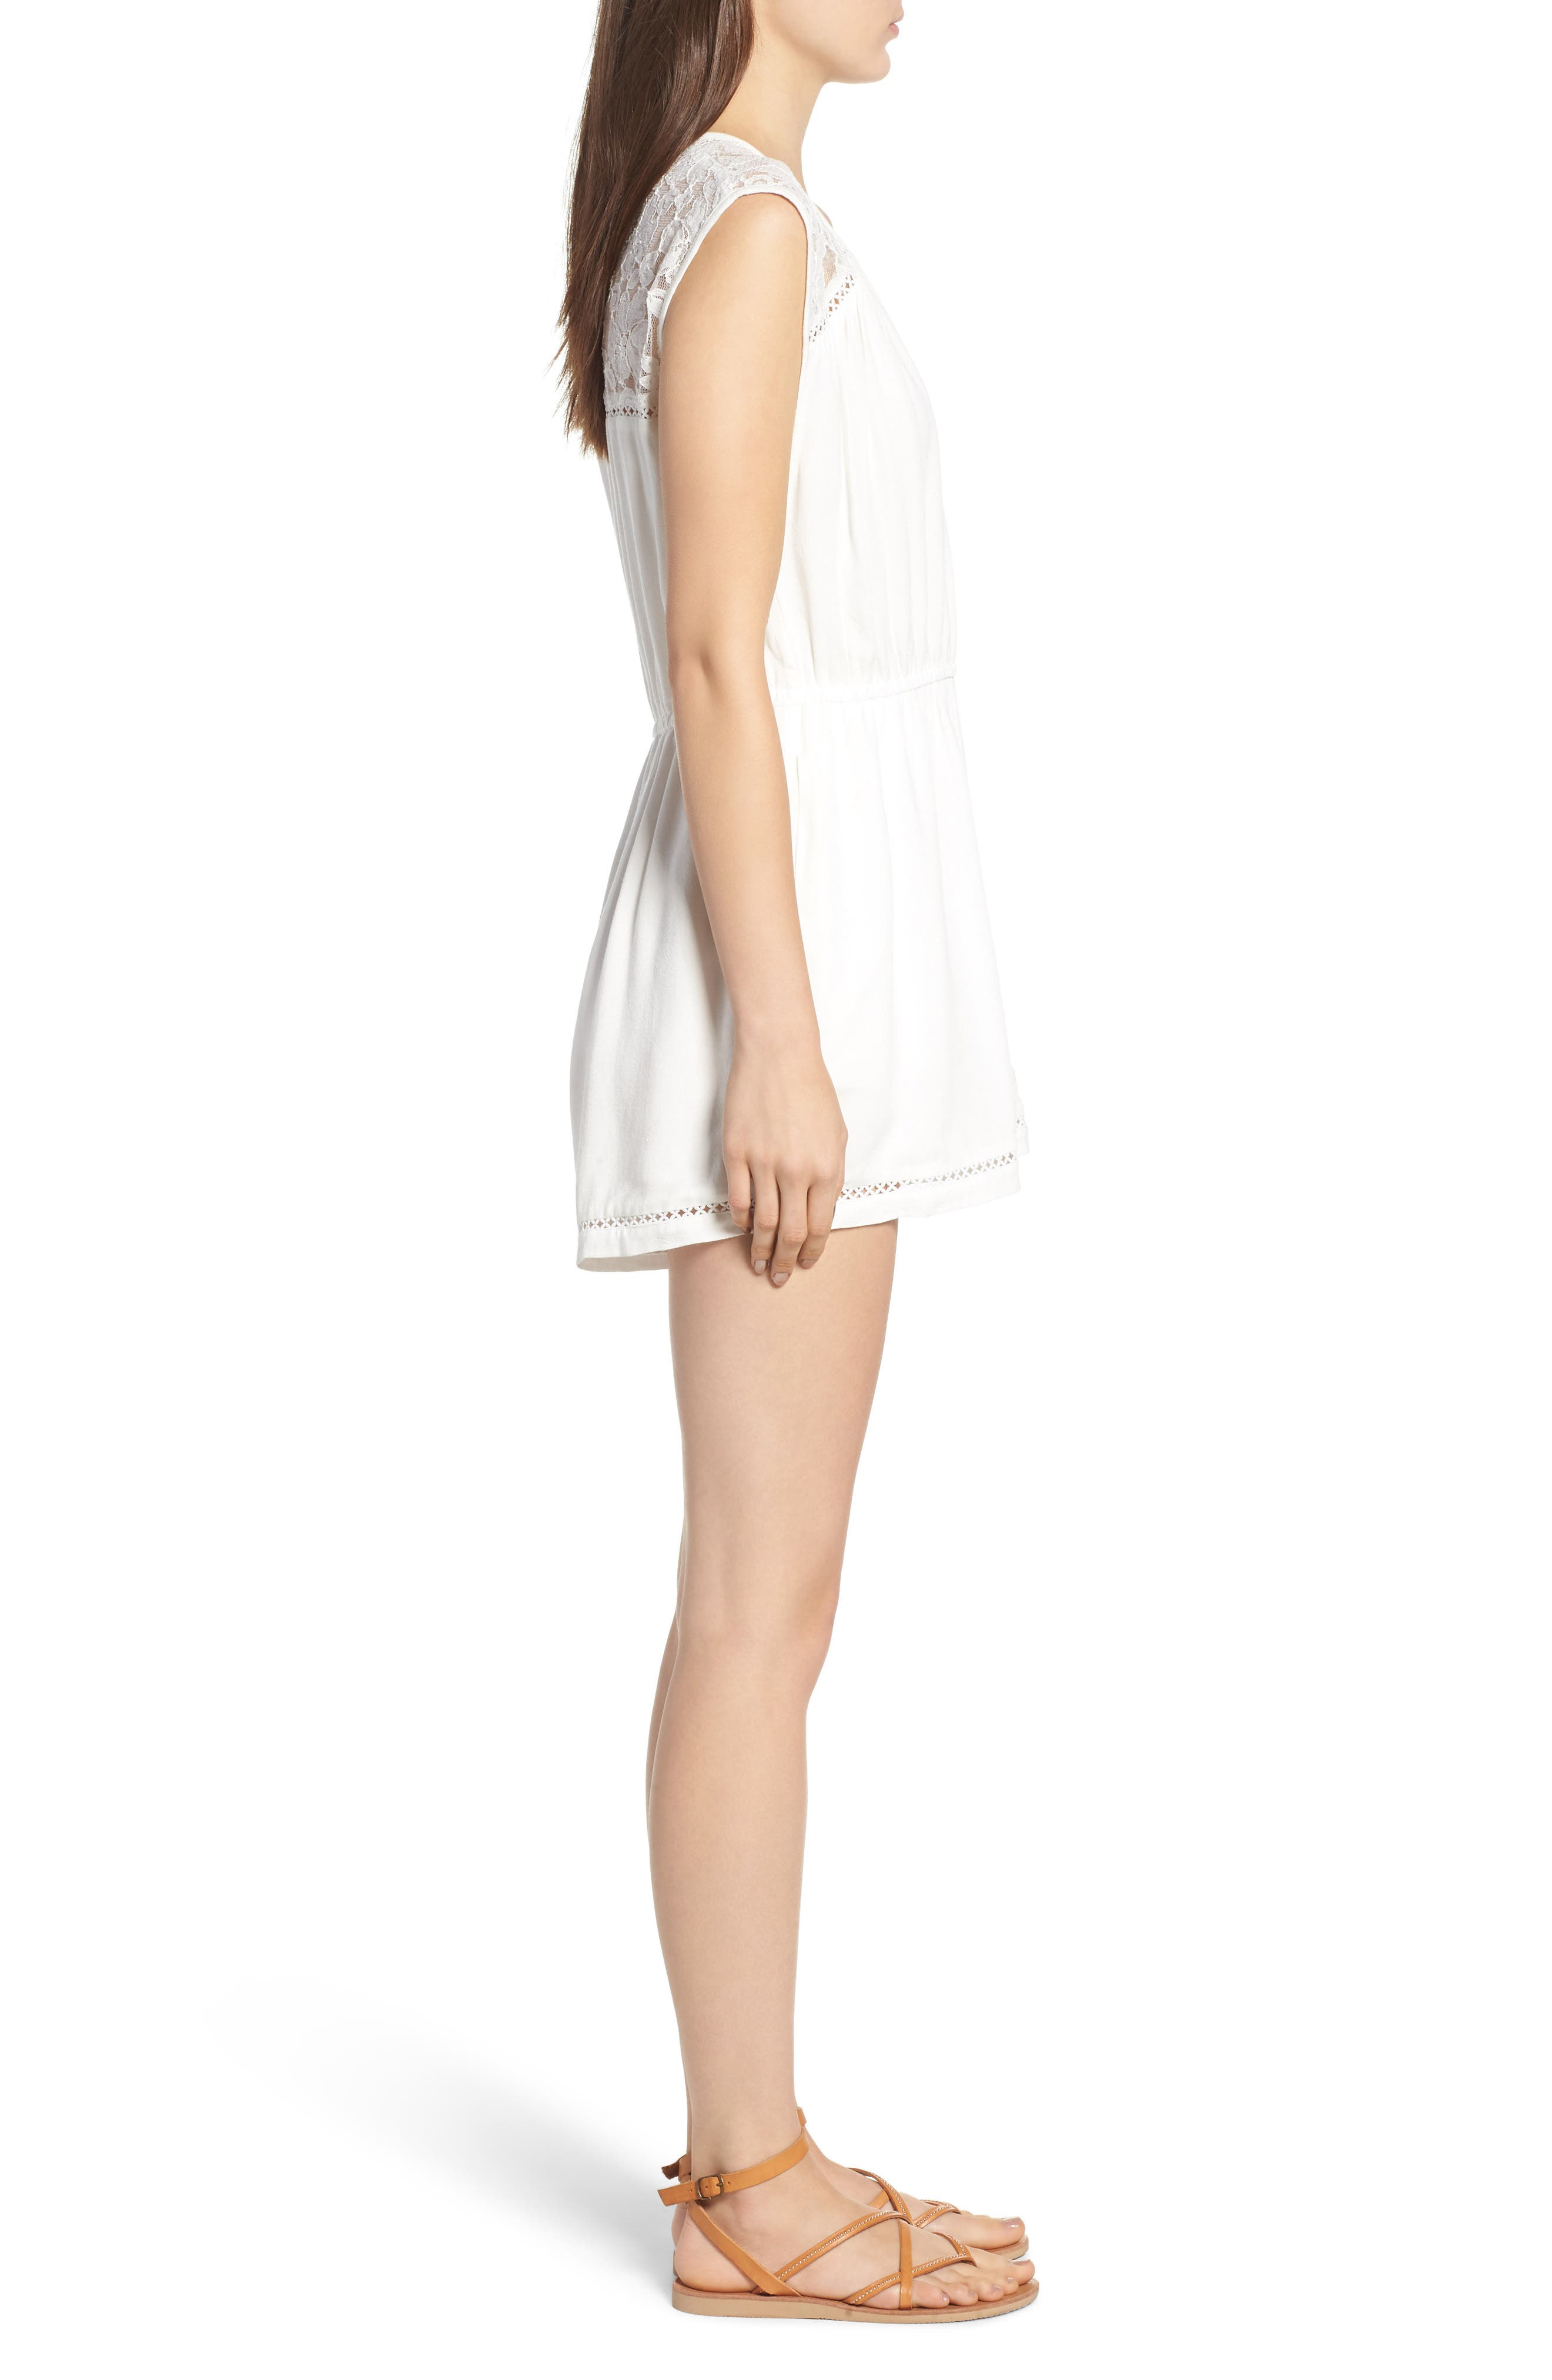 Oceans Away Lace Panel Romper,                             Alternate thumbnail 4, color,                             White